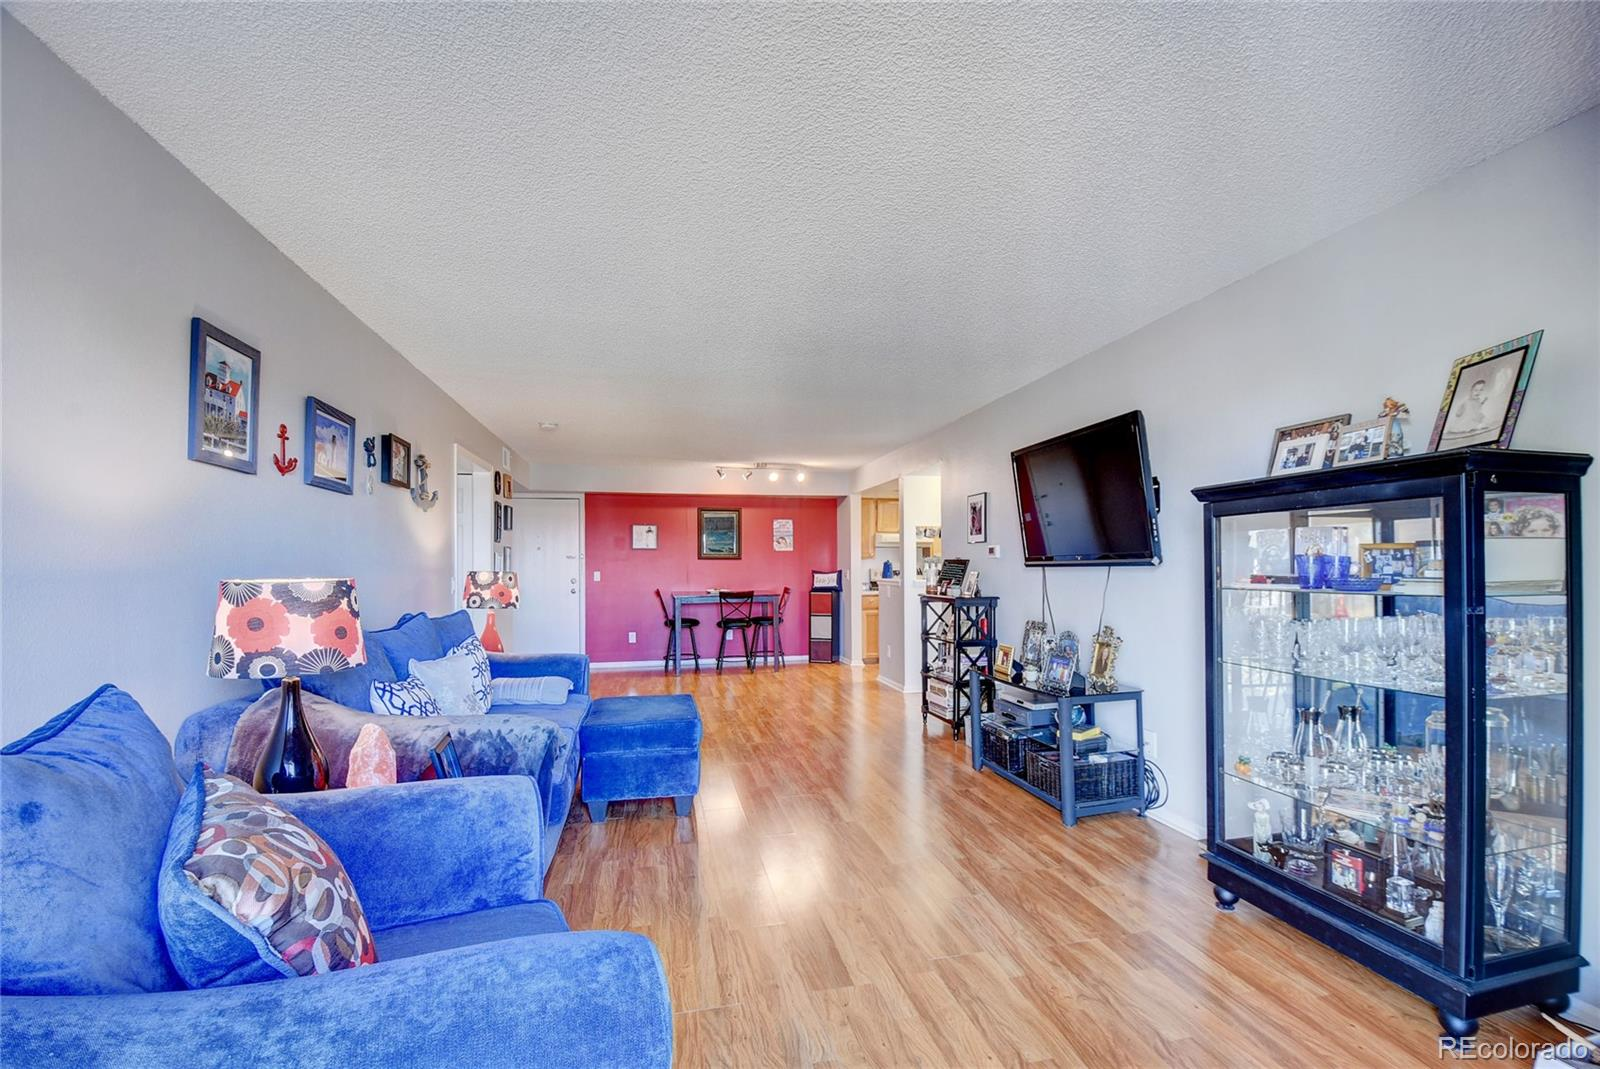 NO SHOWINGS M-F!!      SAT 10AM TO 4PM and SUN 11AM TO 3PM ONLY.  This one will NOT last long!  Updated 2nd Floor Condo Unit rarely becomes available in this Bayberry Community!  Lots of updates; newly-painted with newer carpet and floors in entire unit.  2 bedrooms (large master with spacious walk-in closet plus 2nd bedroom) with fireplace and in-unit laundry.  It has sliding doors to the patio, with beautiful mountain views!  Very clean and well maintained!  Secure entrance and secure heated garage w/dedicated parking spot, elevator, and locked storage area. Plenty of parking of guests. The whole complex has been updated, new asphalt in parking lot, carpet and lighting throughout building.  Community amenities include community pool, tennis courts and volleyball court, parks, lots of areas for pets and children. Close RTD light rail options. Easy access to Denver, DTC, DIA, Highways, Buckley Air Force Base (AFB), Aurora Government offices, AND In-N-Out Burger!  It is also close to Highline Canal for walking, jogging & biking.  This condo is located on the quiet side of the building and off the street.  HOA is managed by established professional company.    The complex has been updated with new asphalt parking lot, new entry system, call box and mailbox. Do not miss this fantastic opportunity to call it yours!